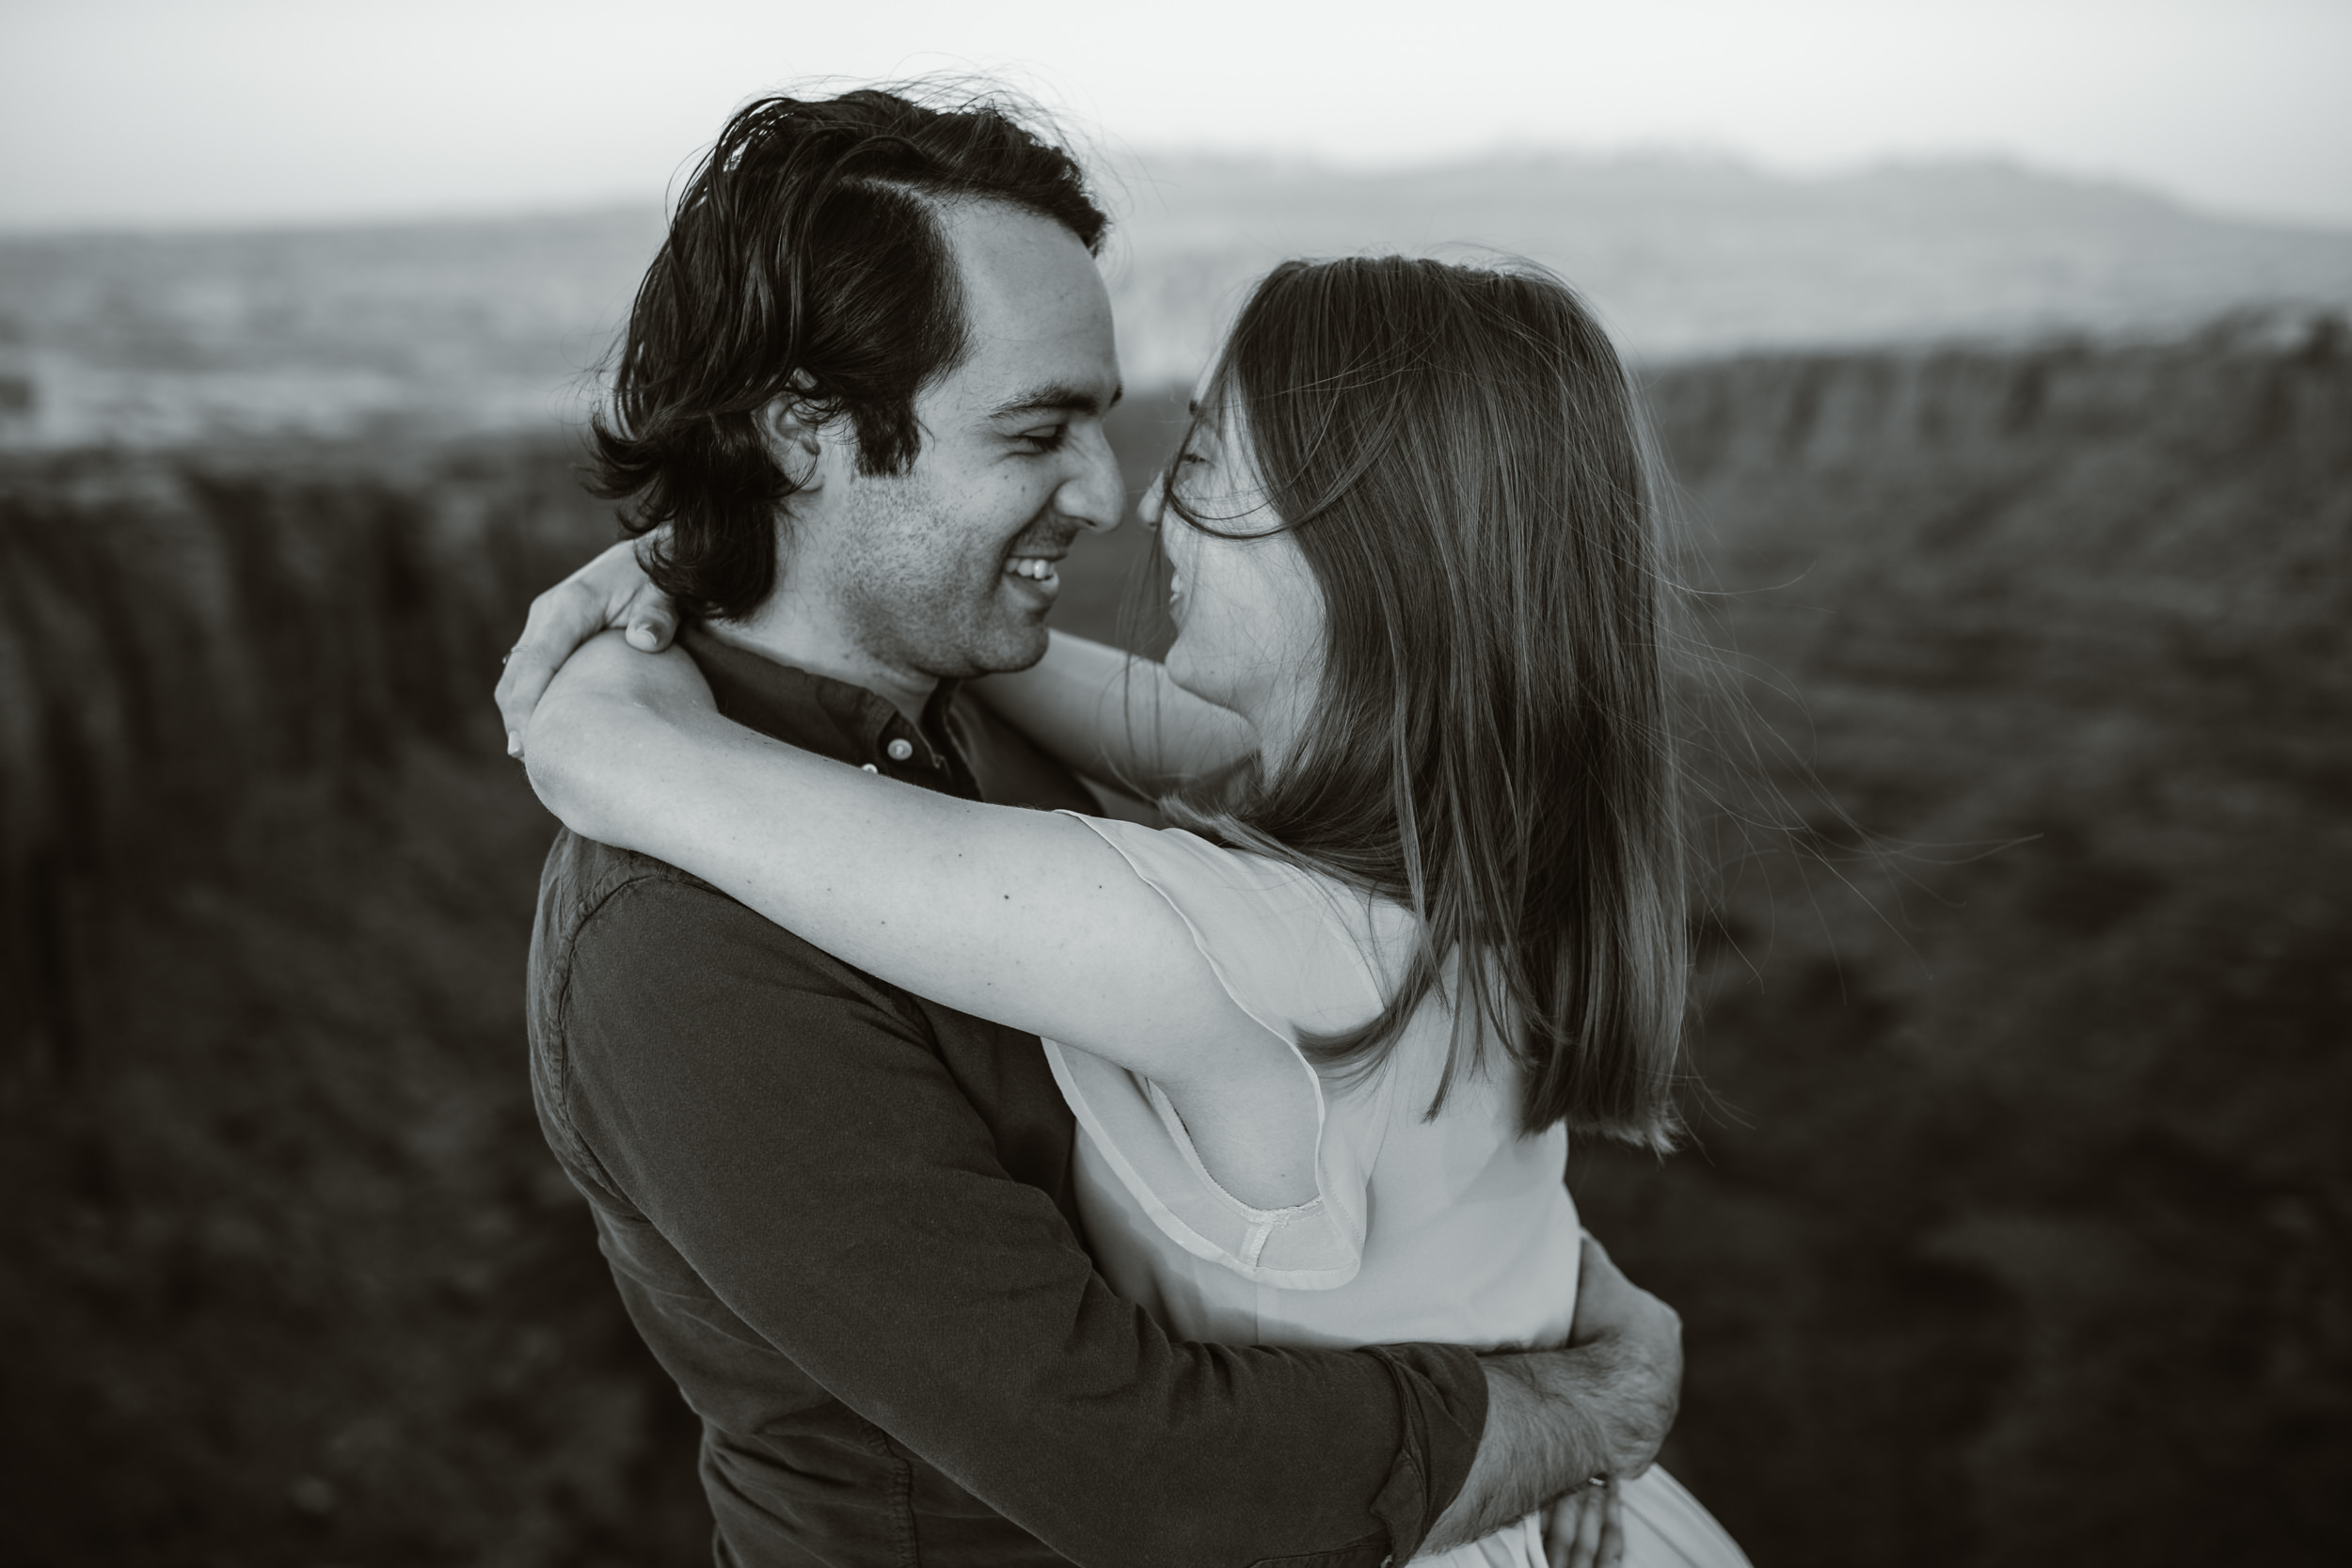 michelle + damian's post-elopement adventure session in moab | moab elopement photographer